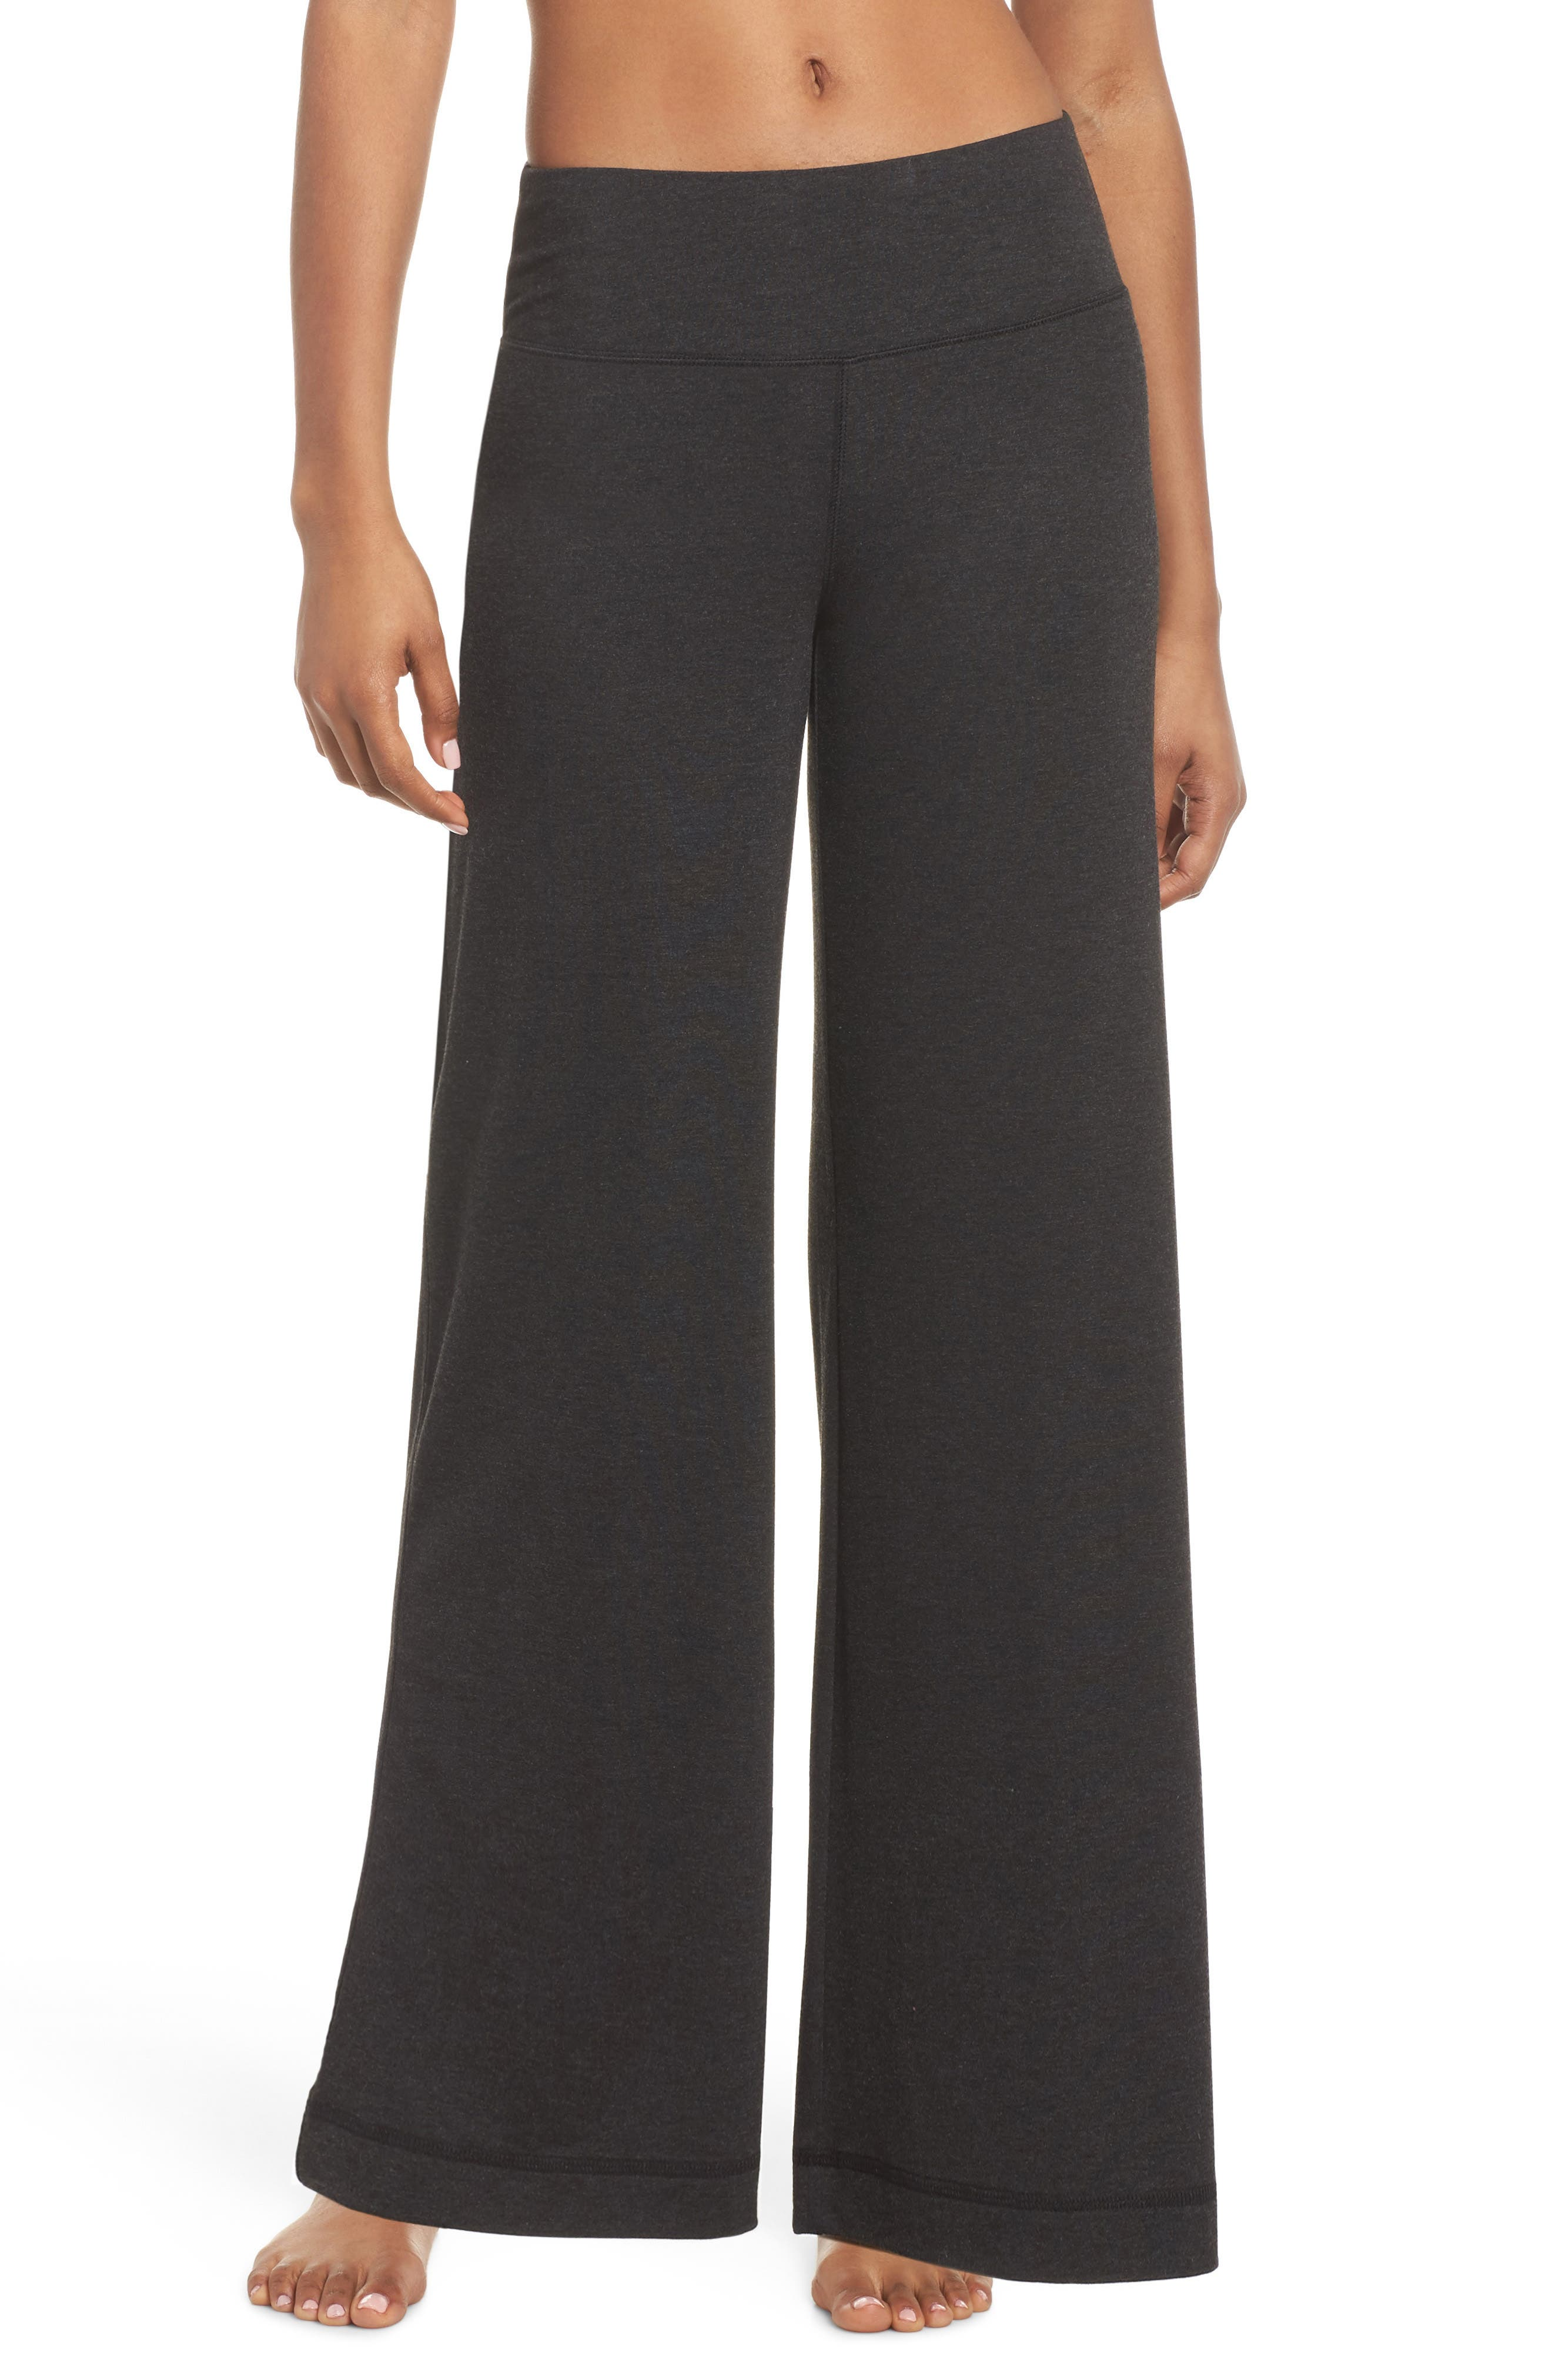 Go With The Flow Pants,                         Main,                         color, Grey Dark Charcoal Heather